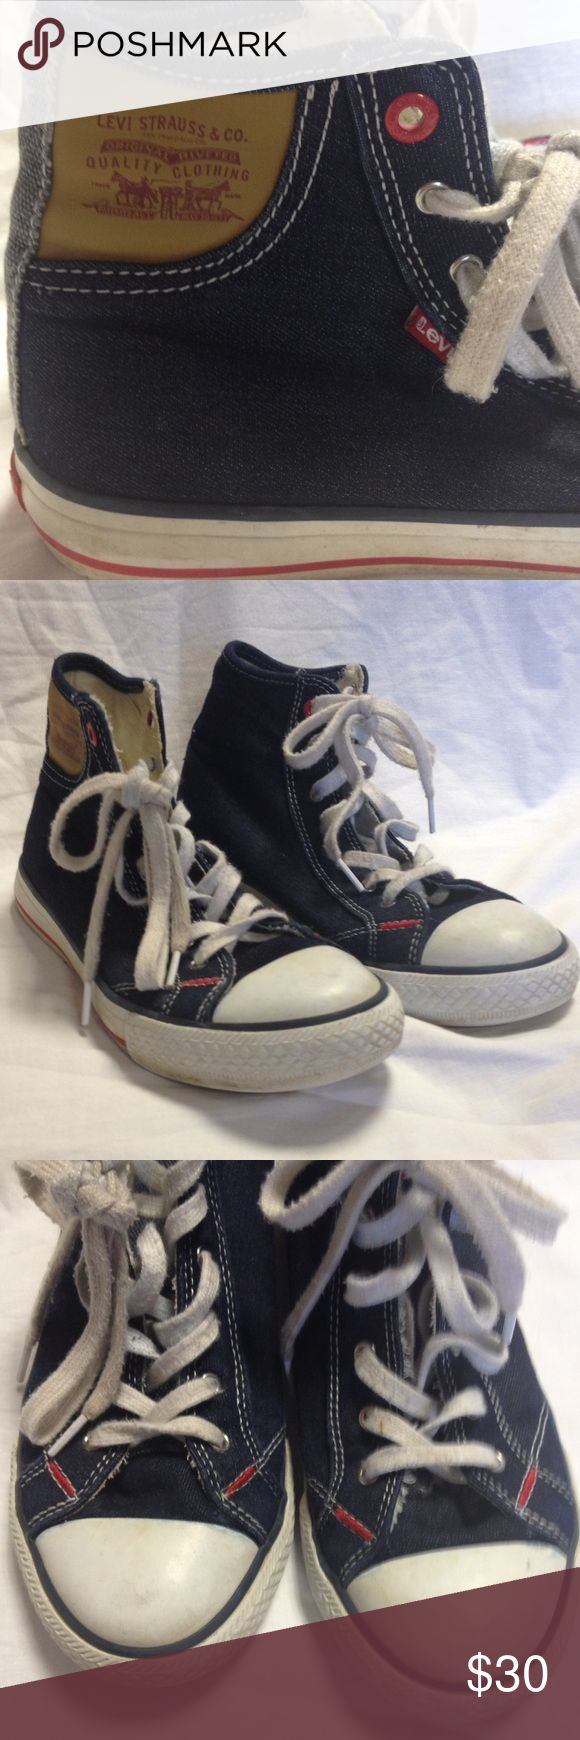 Levi's high top tennis shoes kid's size 3 1/2 These tennis shoes are adorable.  Would be cute with jeans now and shorts in the summer. Good used condition Levi's Shoes Sneakers